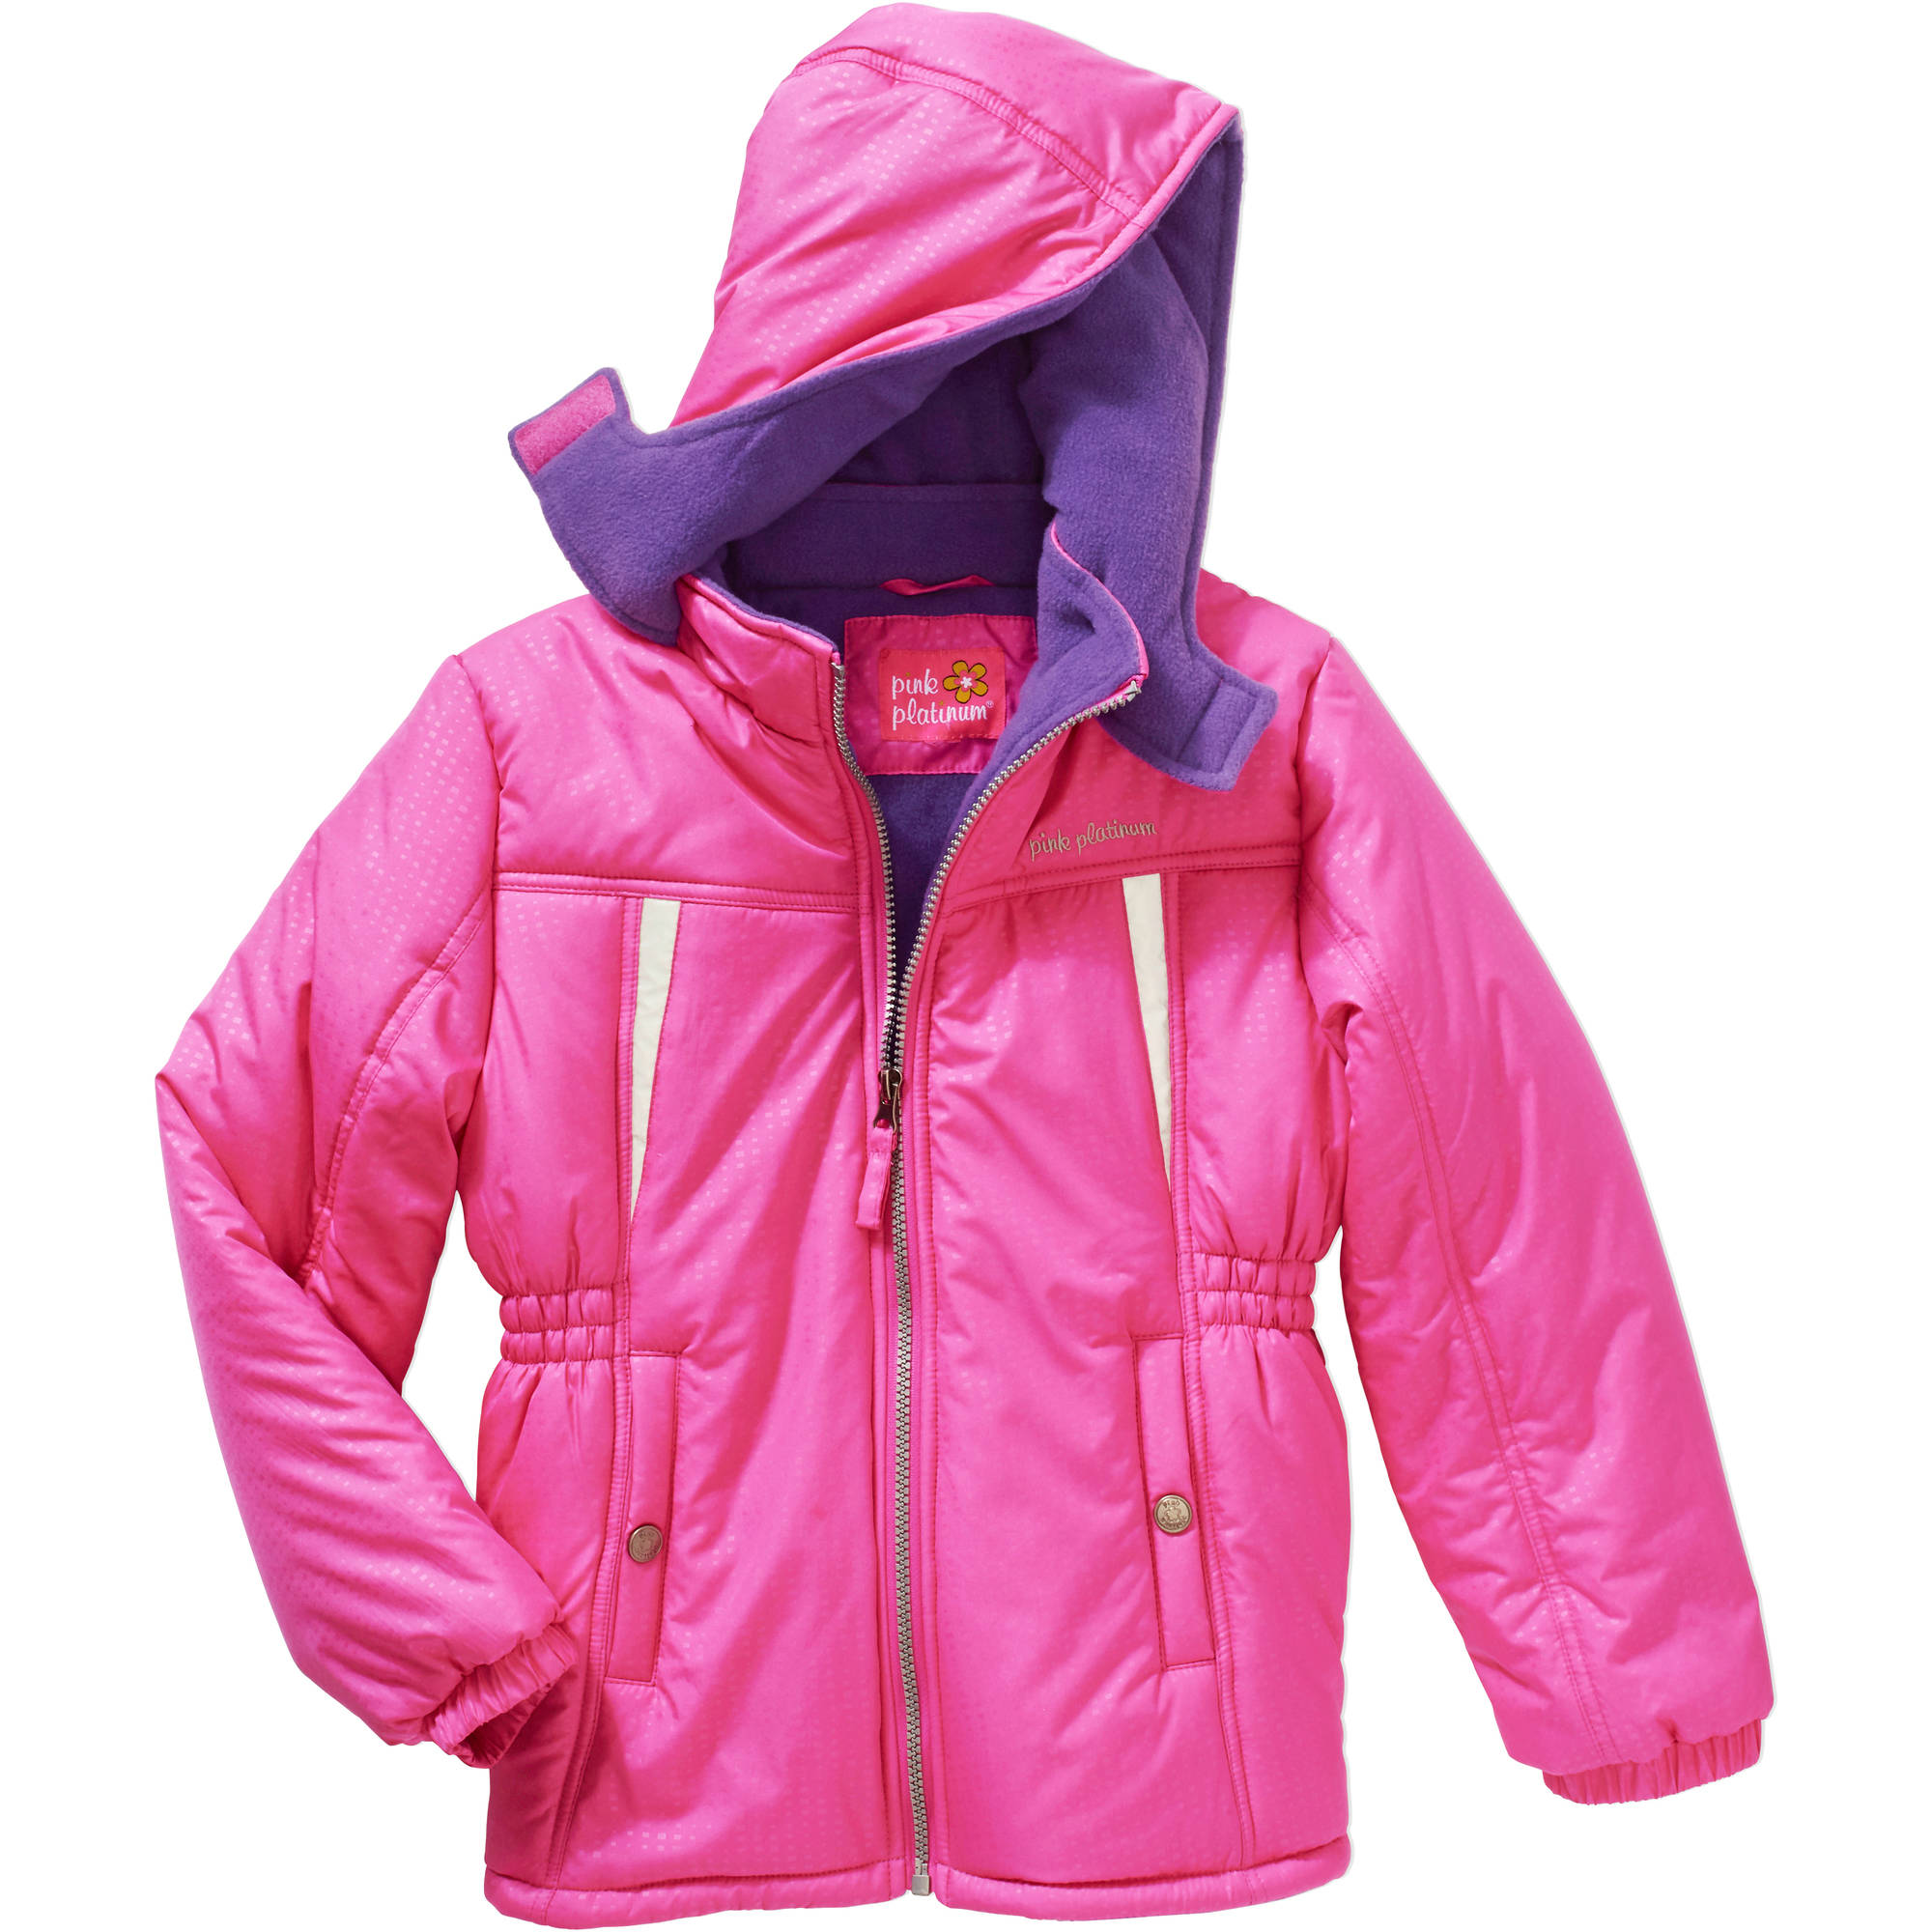 Girls' Stamp Print Active Jacket with Pockets